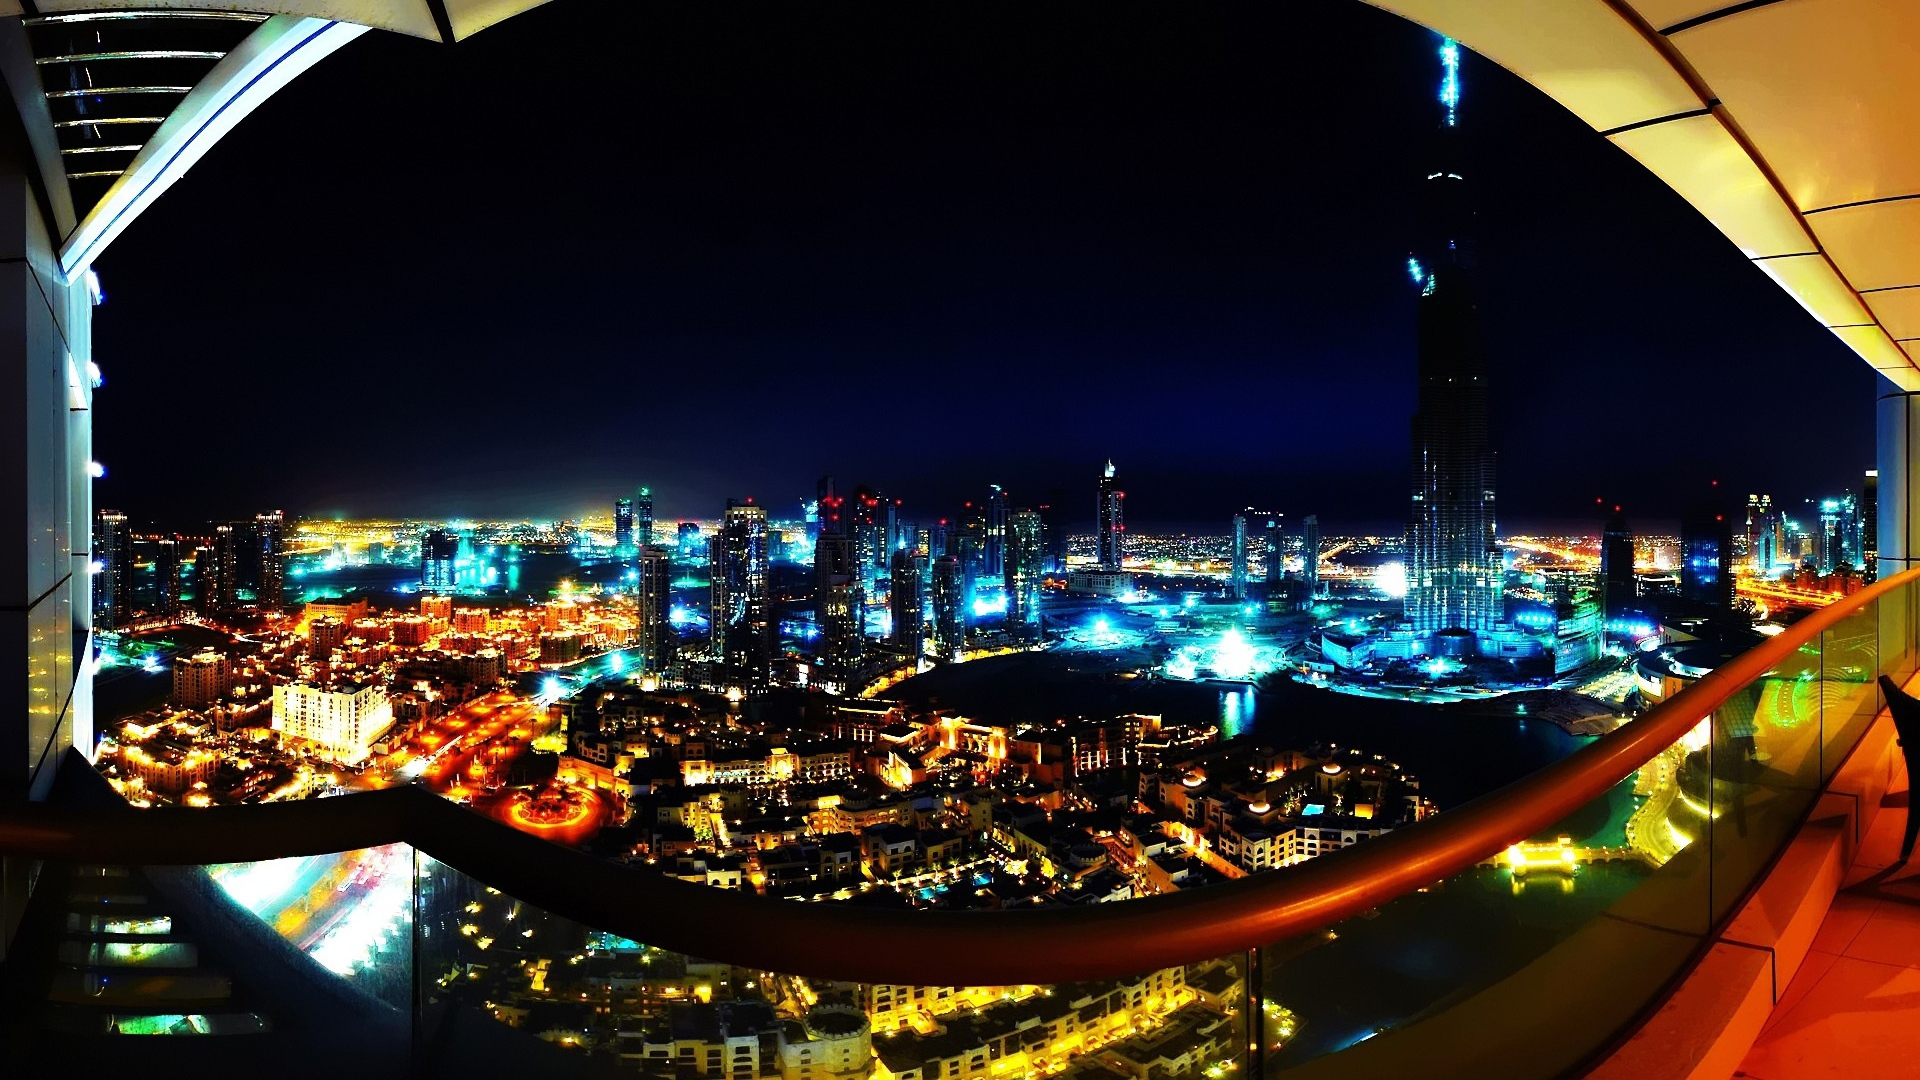 Get The Latest City View Night News Pictures And Videos Learn All About From Wallpapers4uorg Your Wallpaper Source